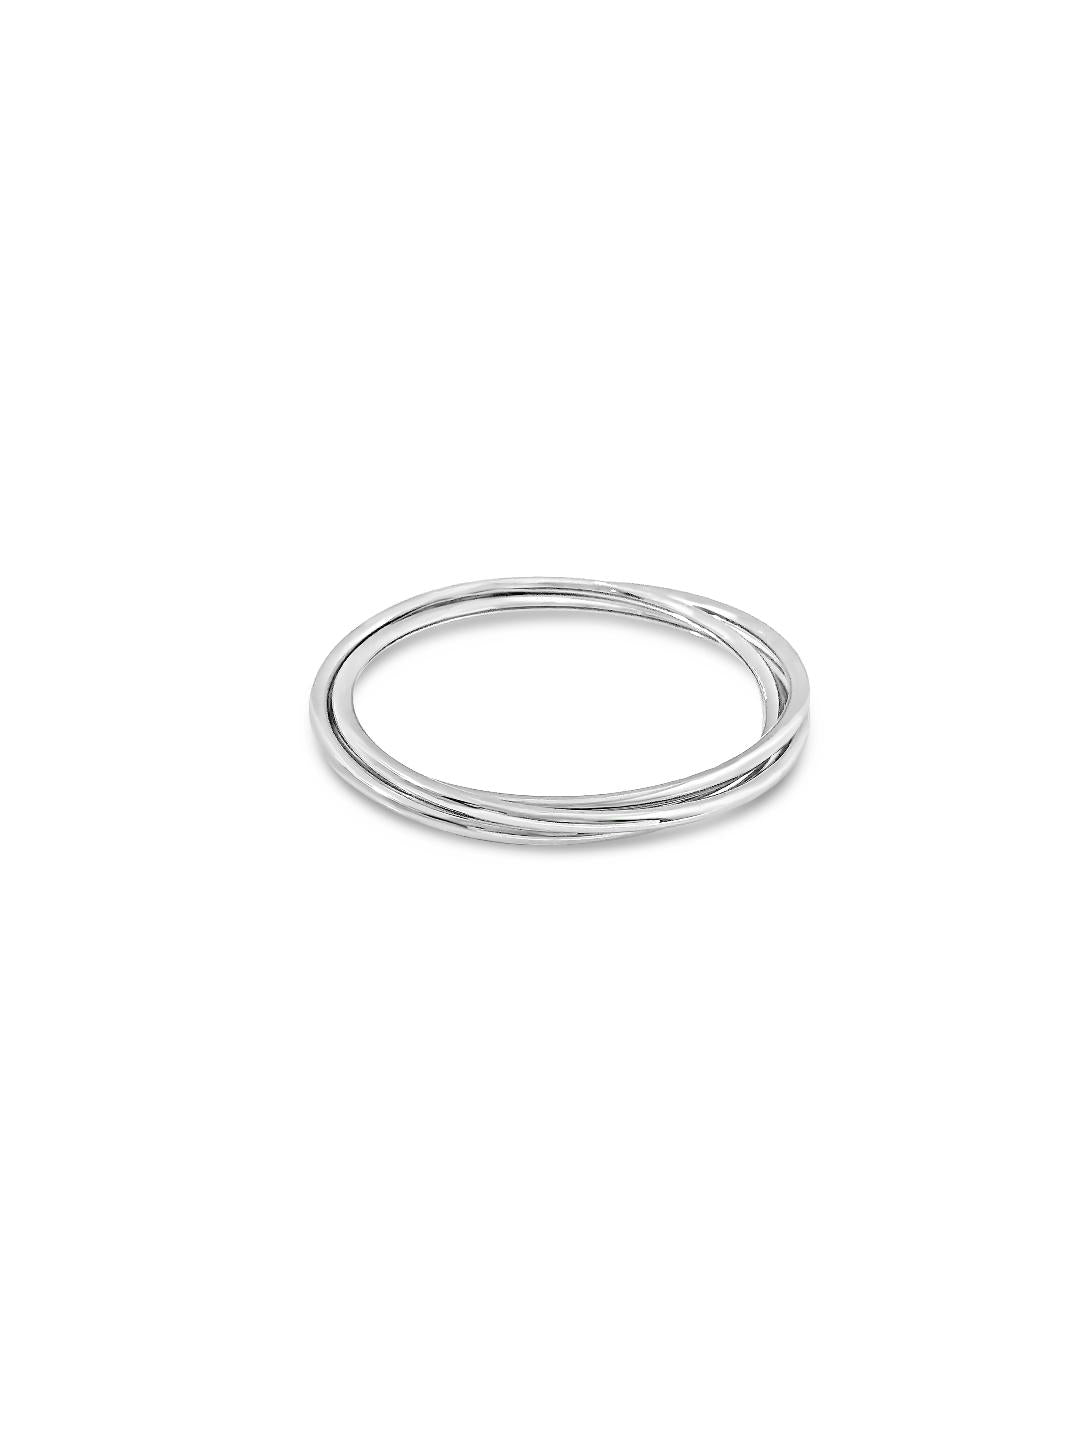 Absolute Jewellery Silver Ring Bangle-Sale